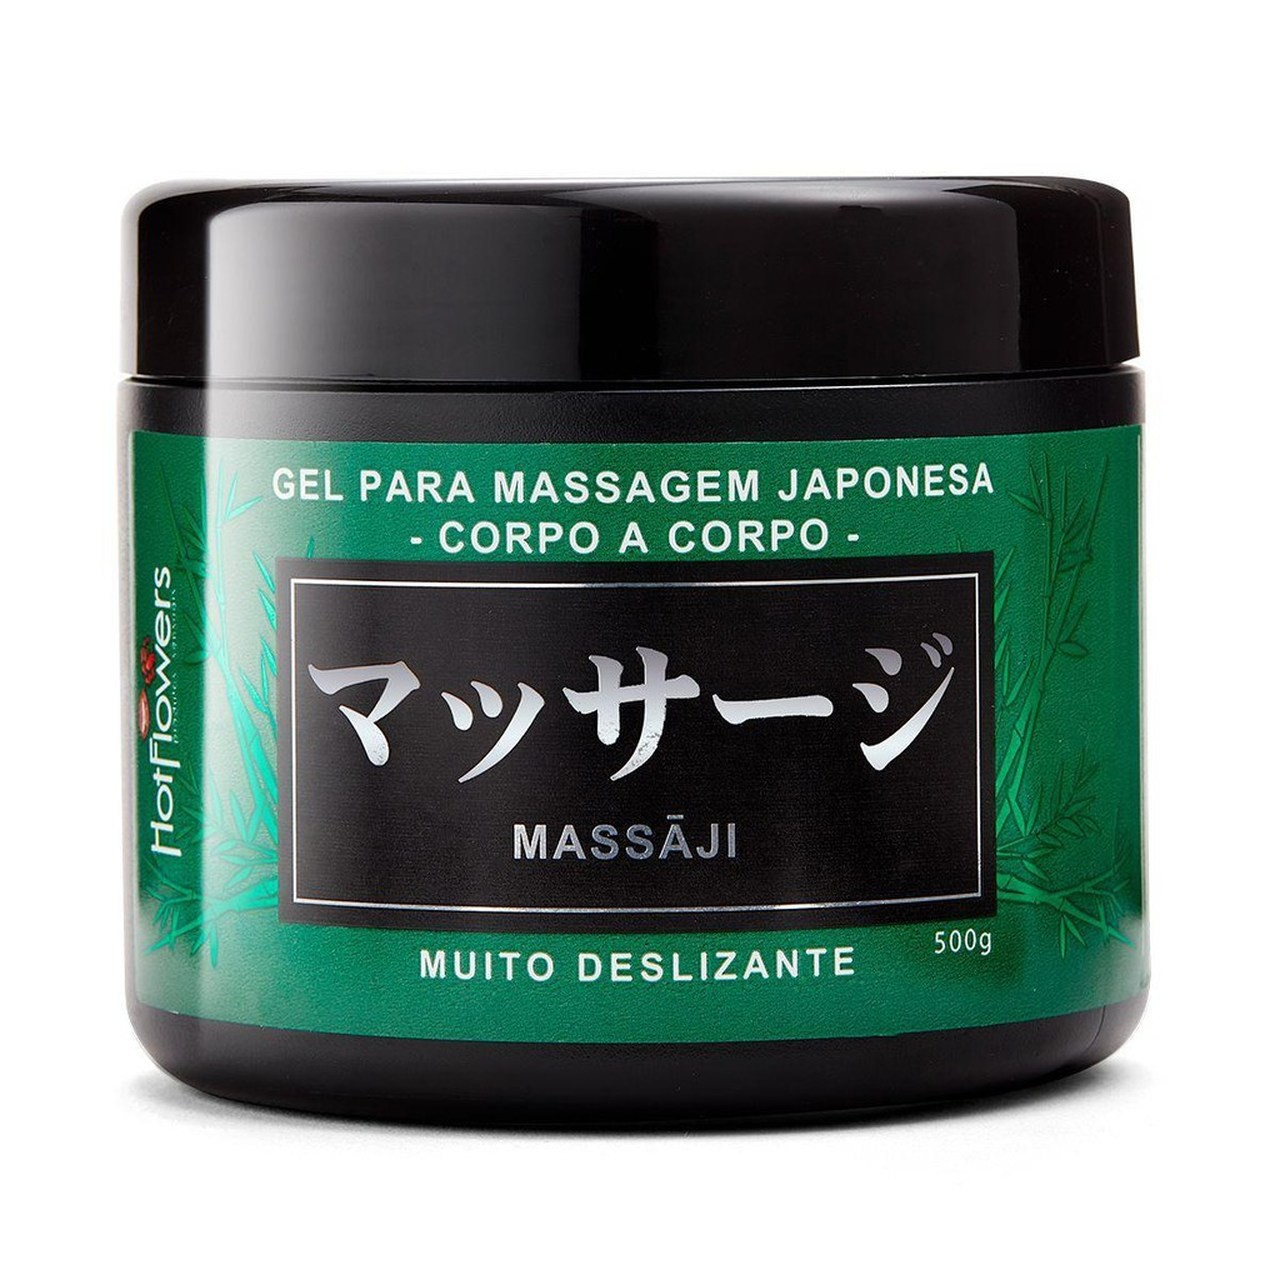 Massaji Gel Massagem Nuru Deslizante Corpo a Corpo - Hot Flowers 500g